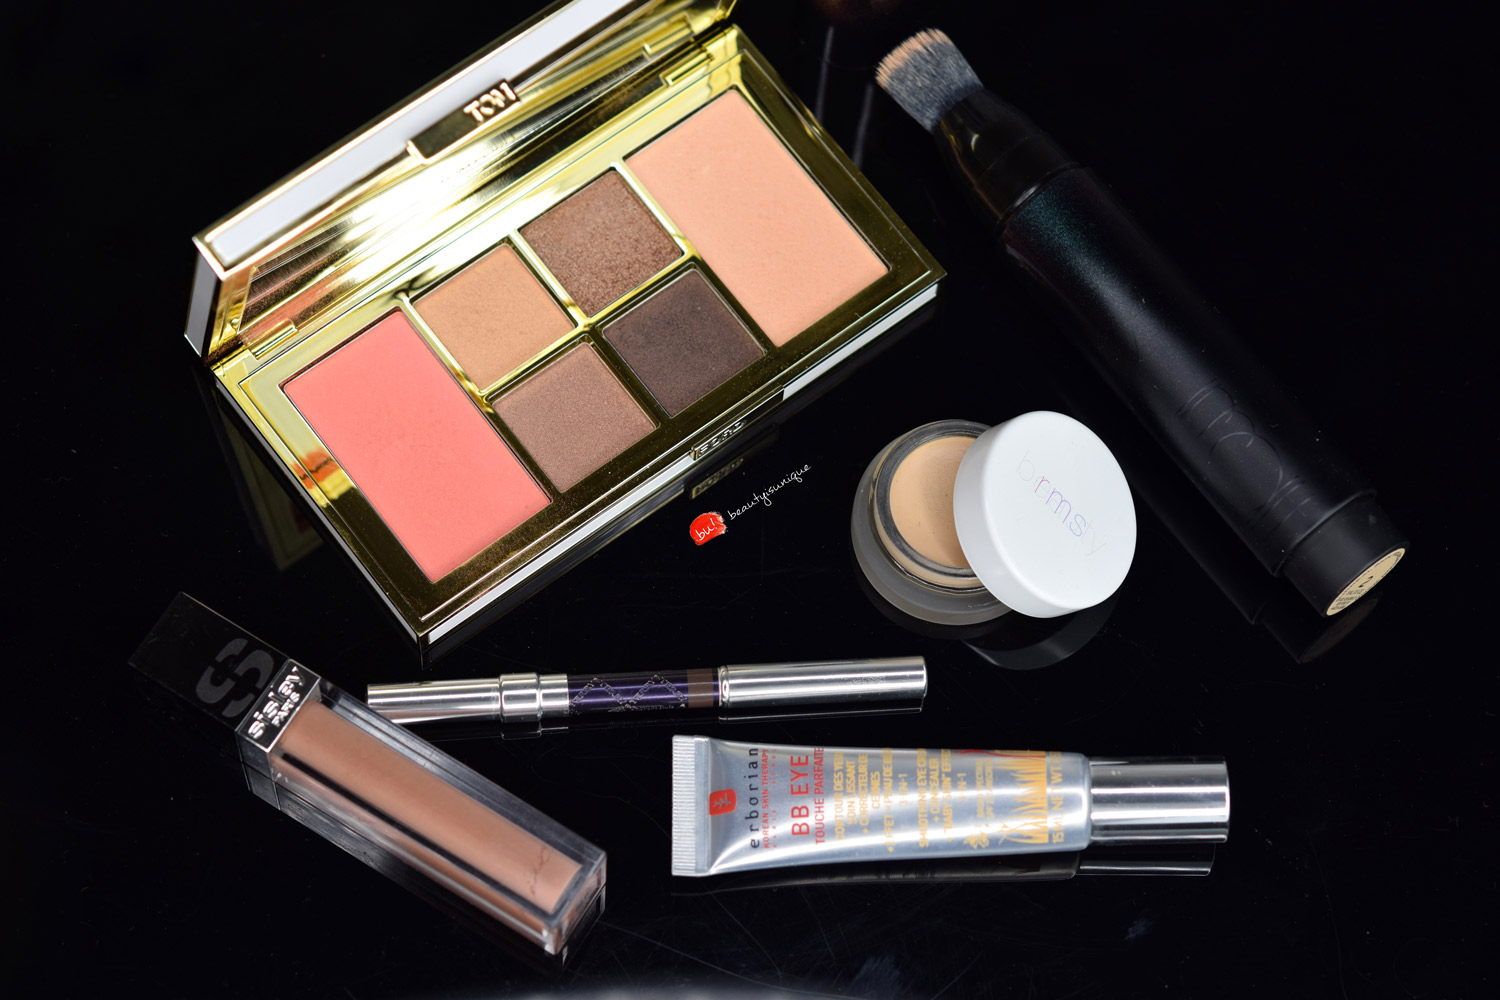 Tom-ford-soleil-eye-and-cheek-palette-warm-02-swatches